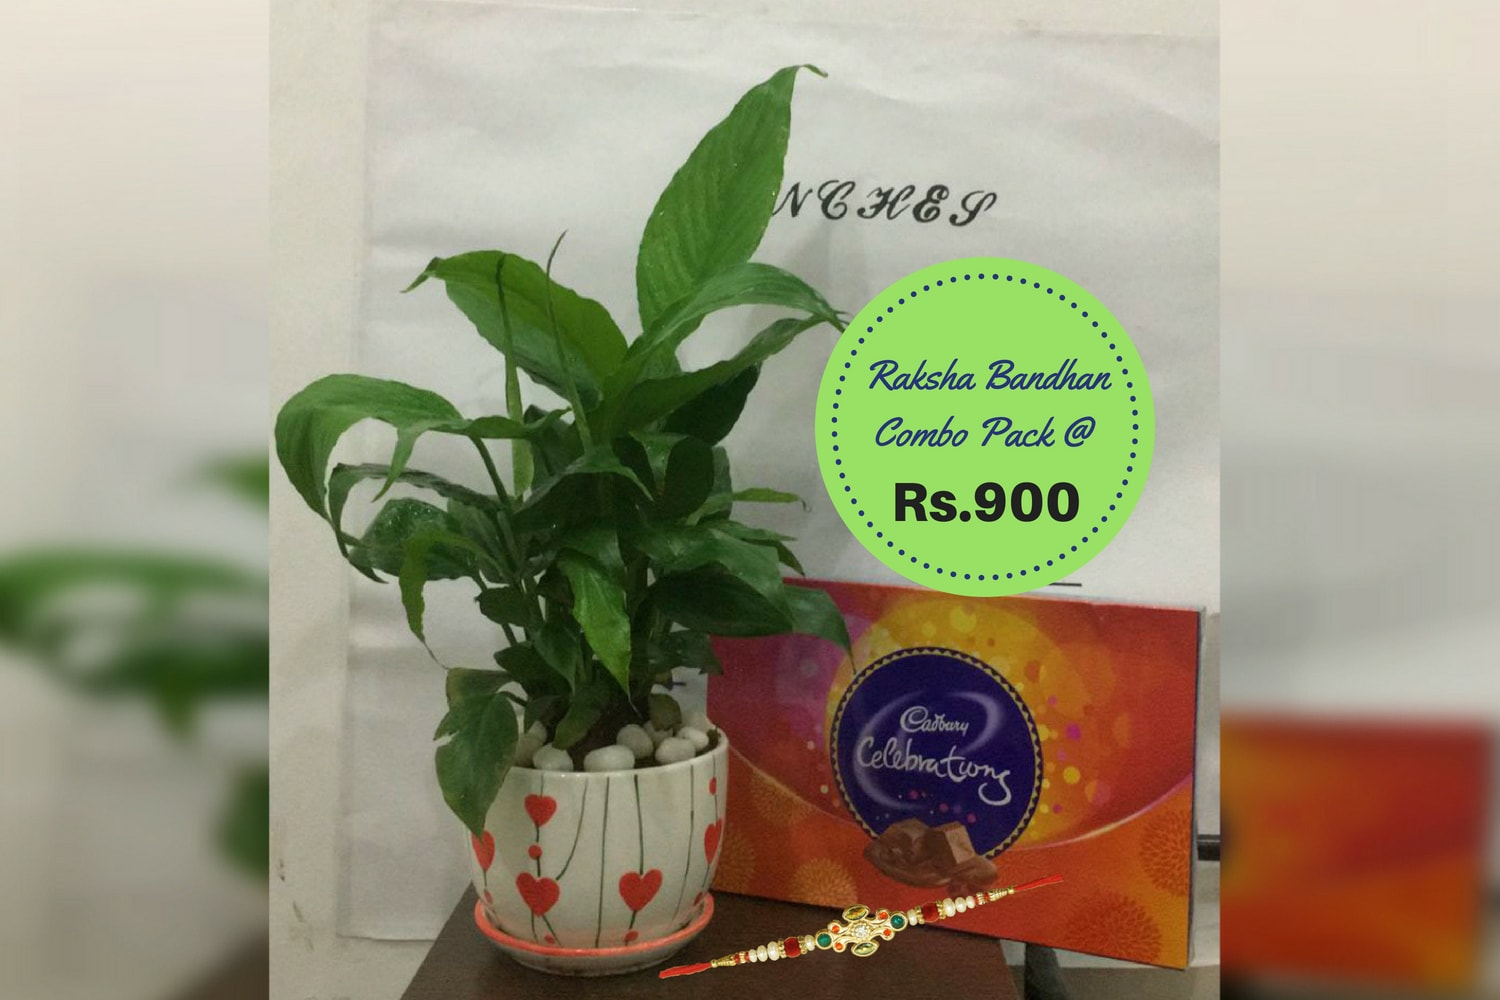 Raksha Bandhan Gift Combo Pack with Peace Lily Plant - Green Decor